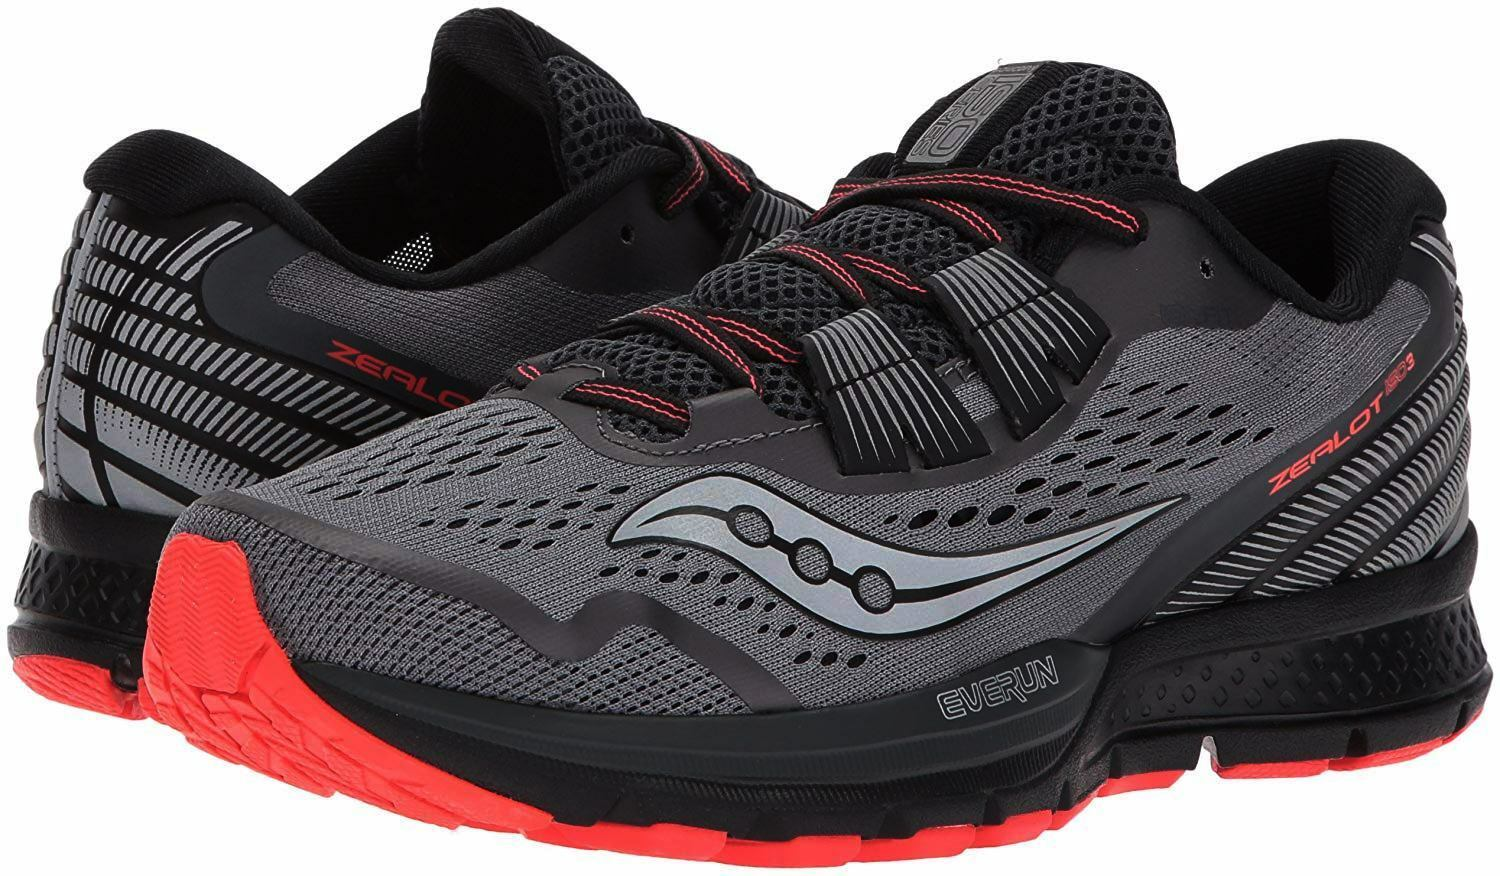 NEW WOMENS SAUCONY ZEALOT ISO 2 REFLEX RUNNING SHOES 9   AUTHENTIC